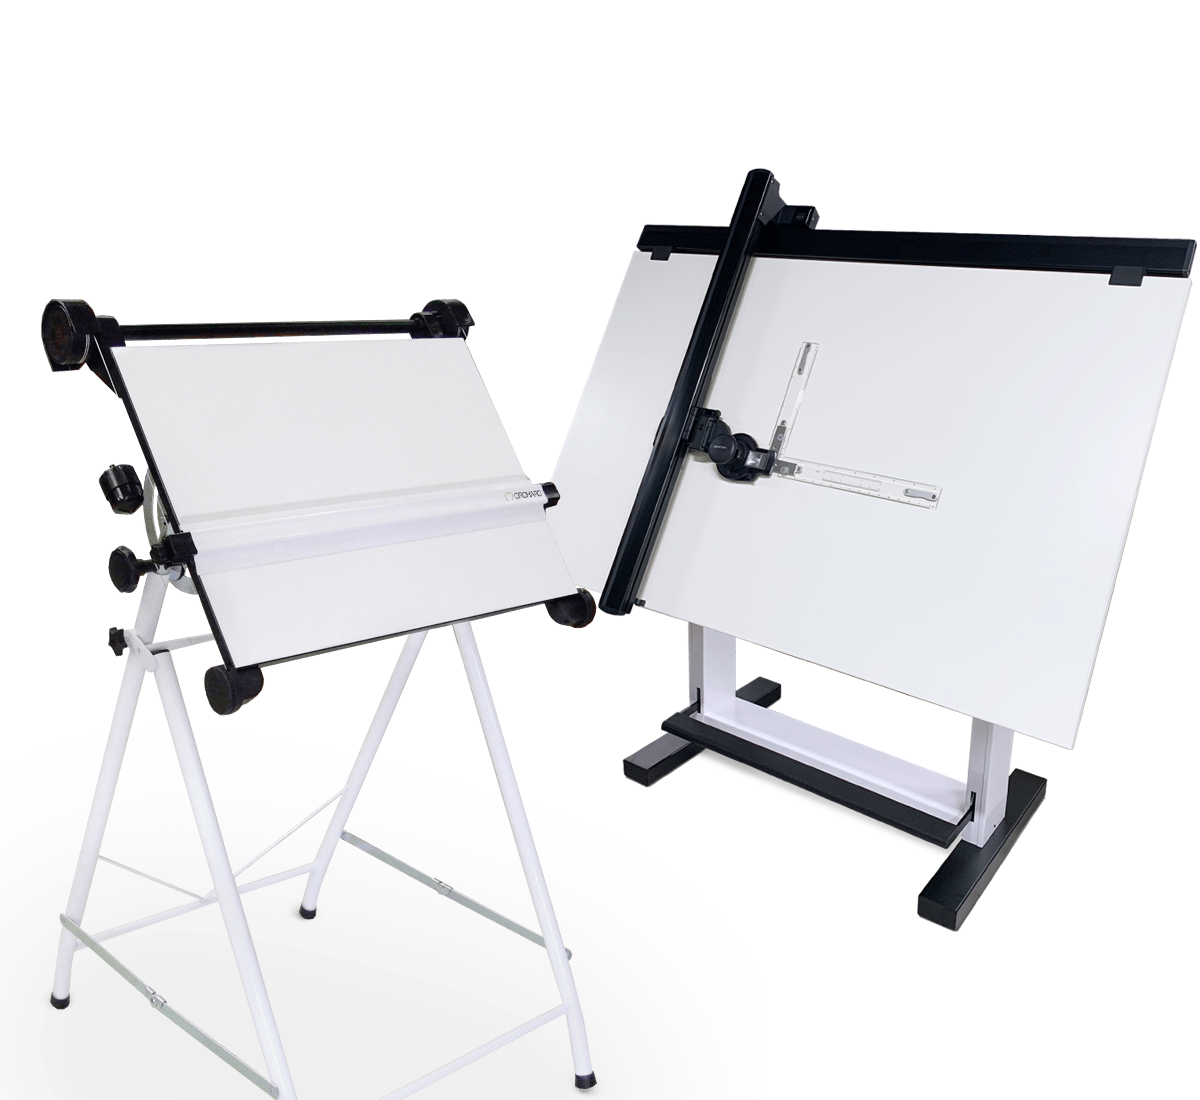 Board drawing stand. Light boxes and boards